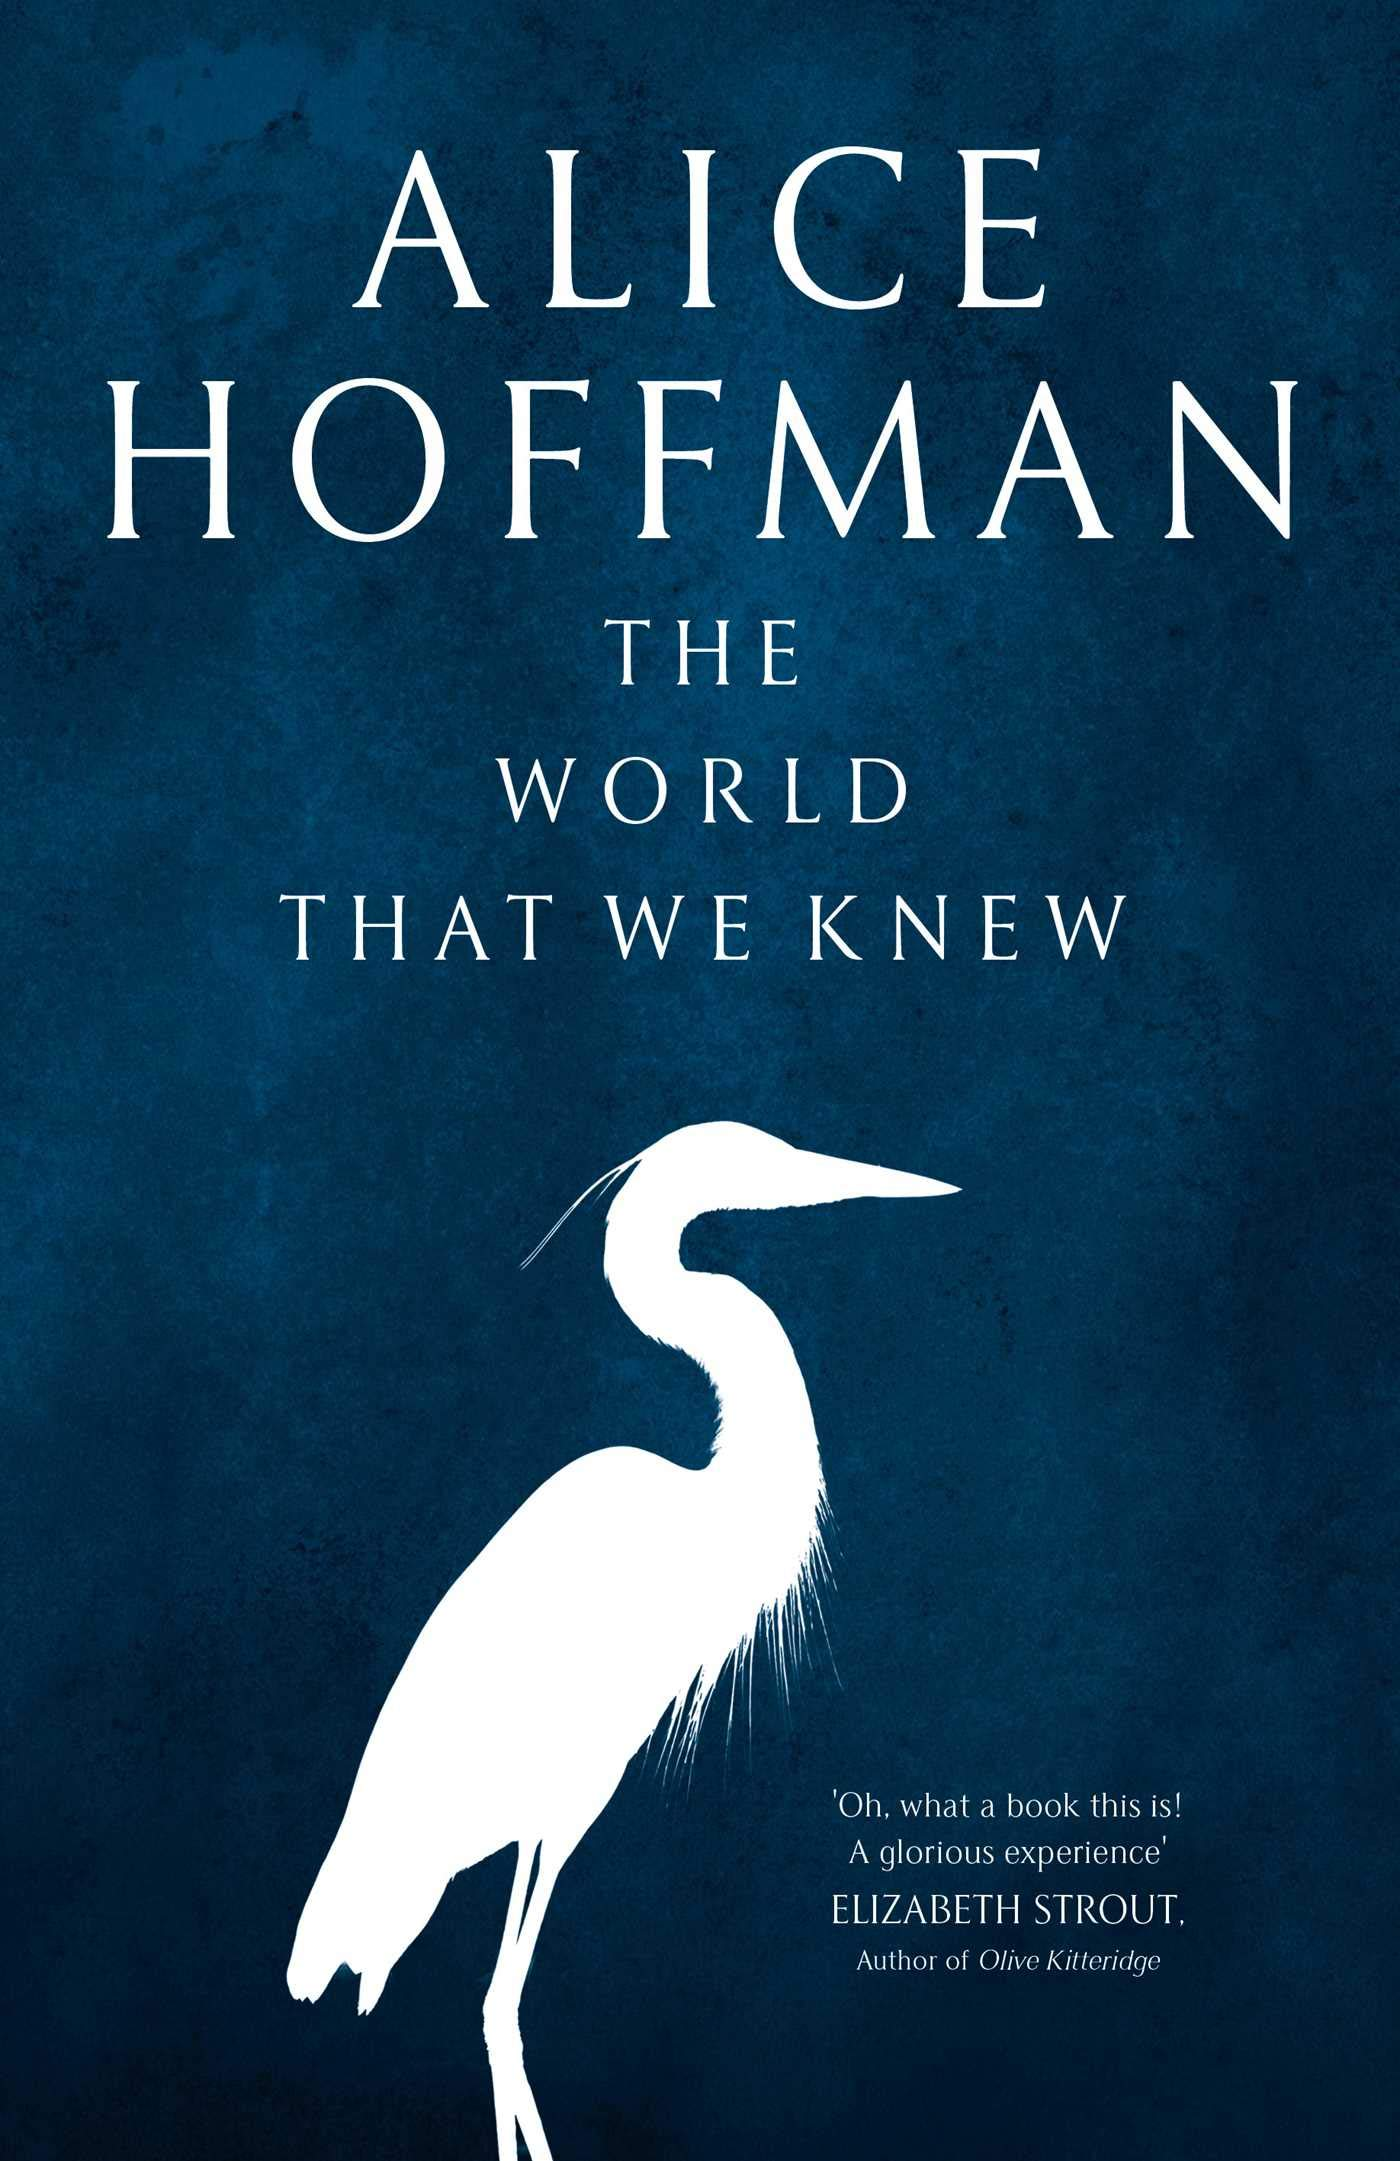 The World That We Knew: Amazon.co.uk: Hoffman, Alice: 9781471185823: Books